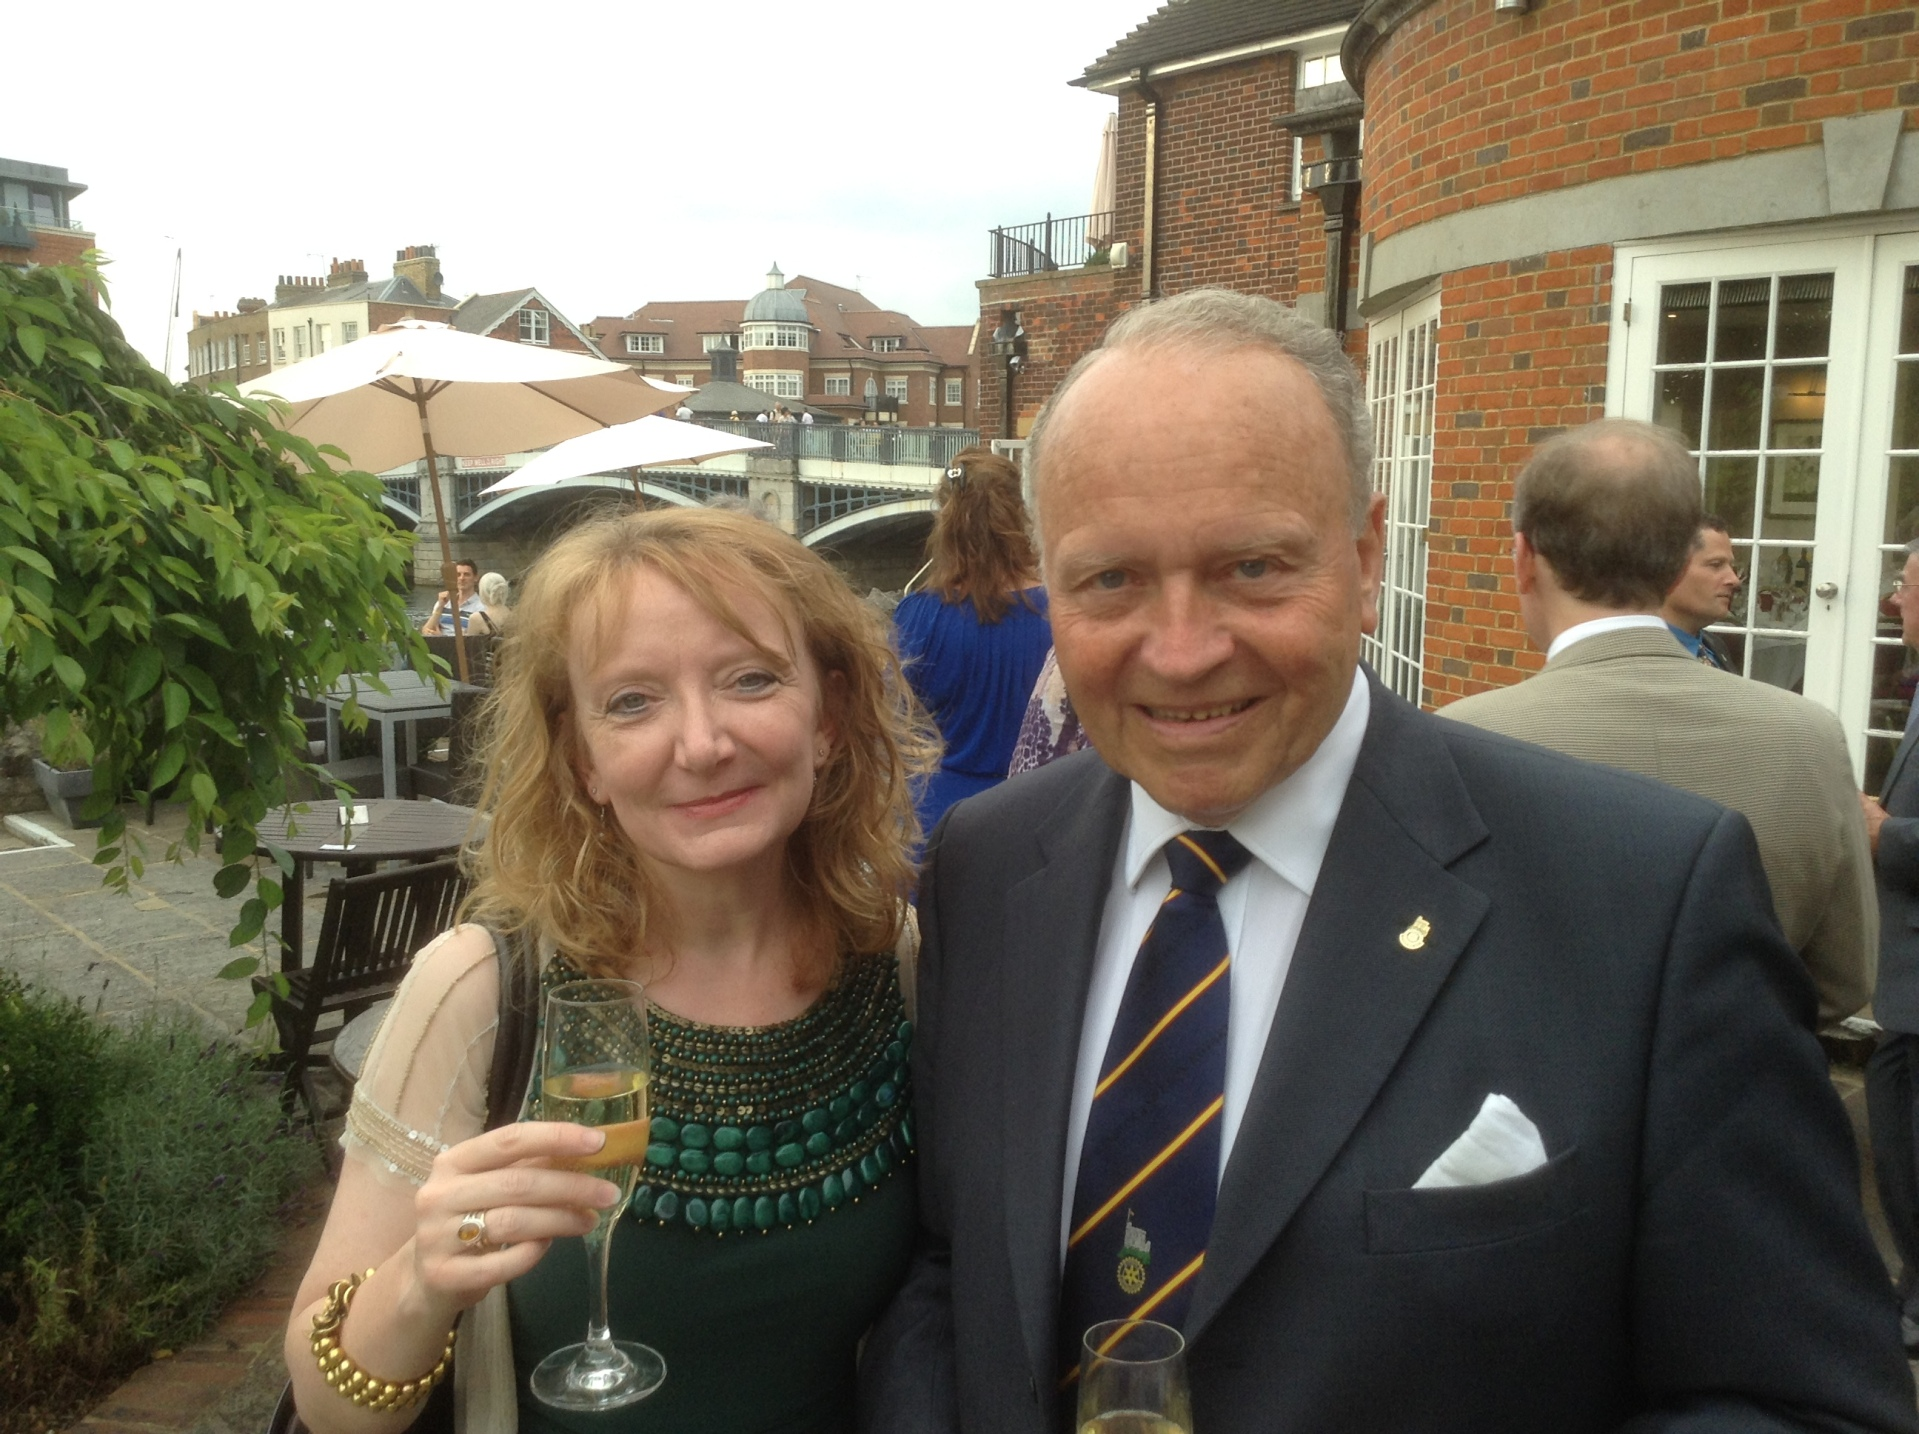 sir ian macfadyen farewell dinner with alison davey